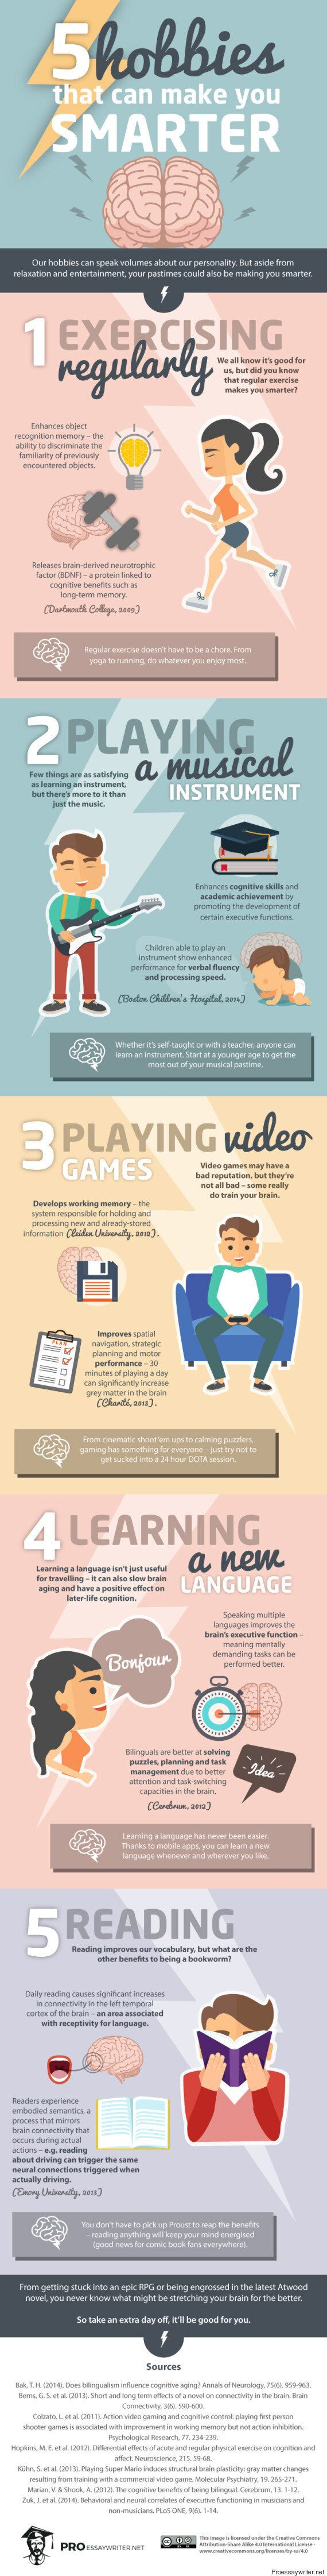 5 Hobbies That Will Make You